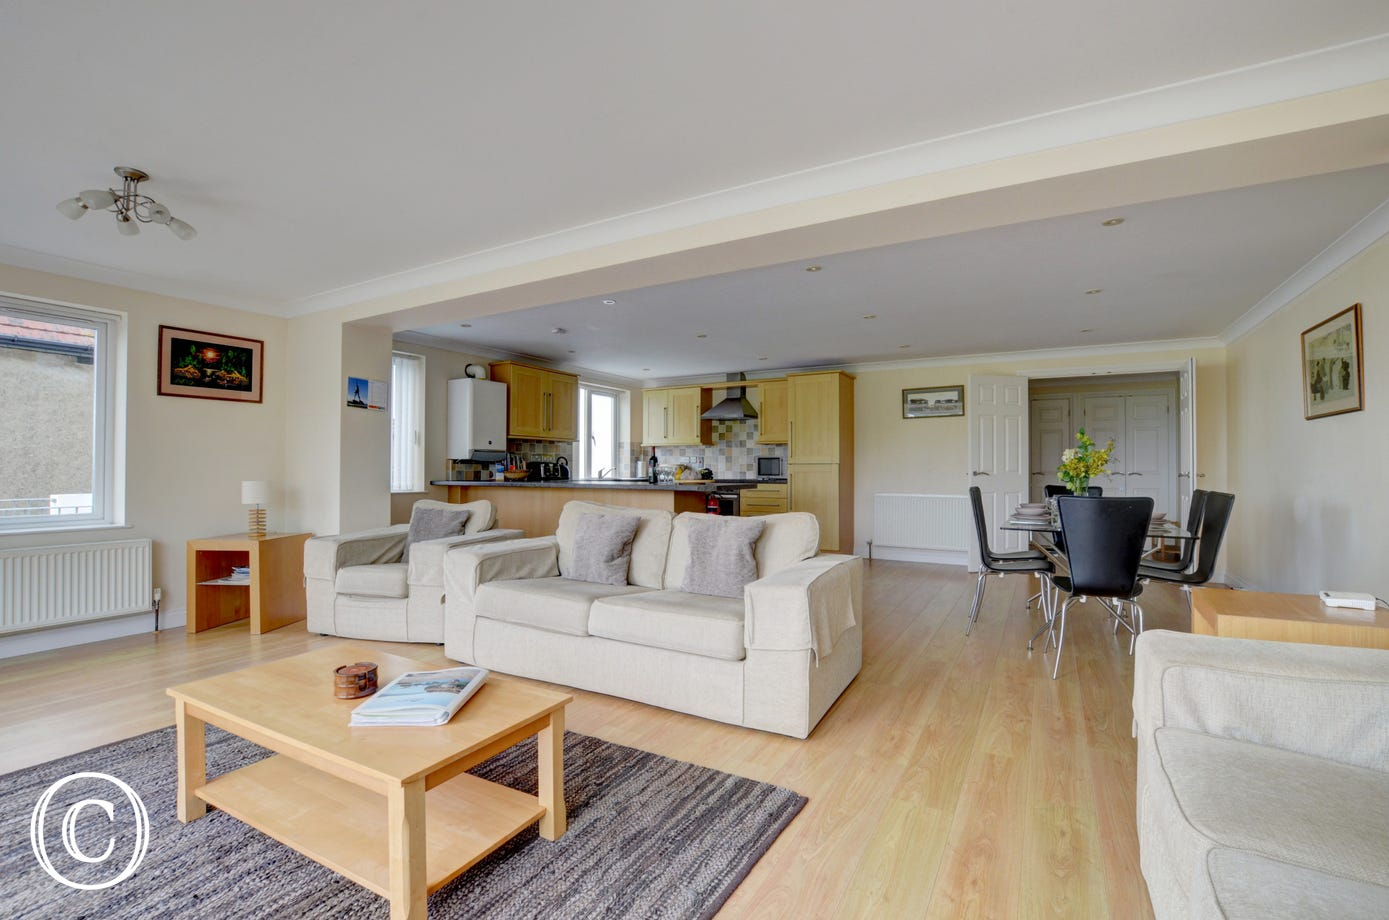 A beautifully presented, spacious modern apartment, furnished to a high standard